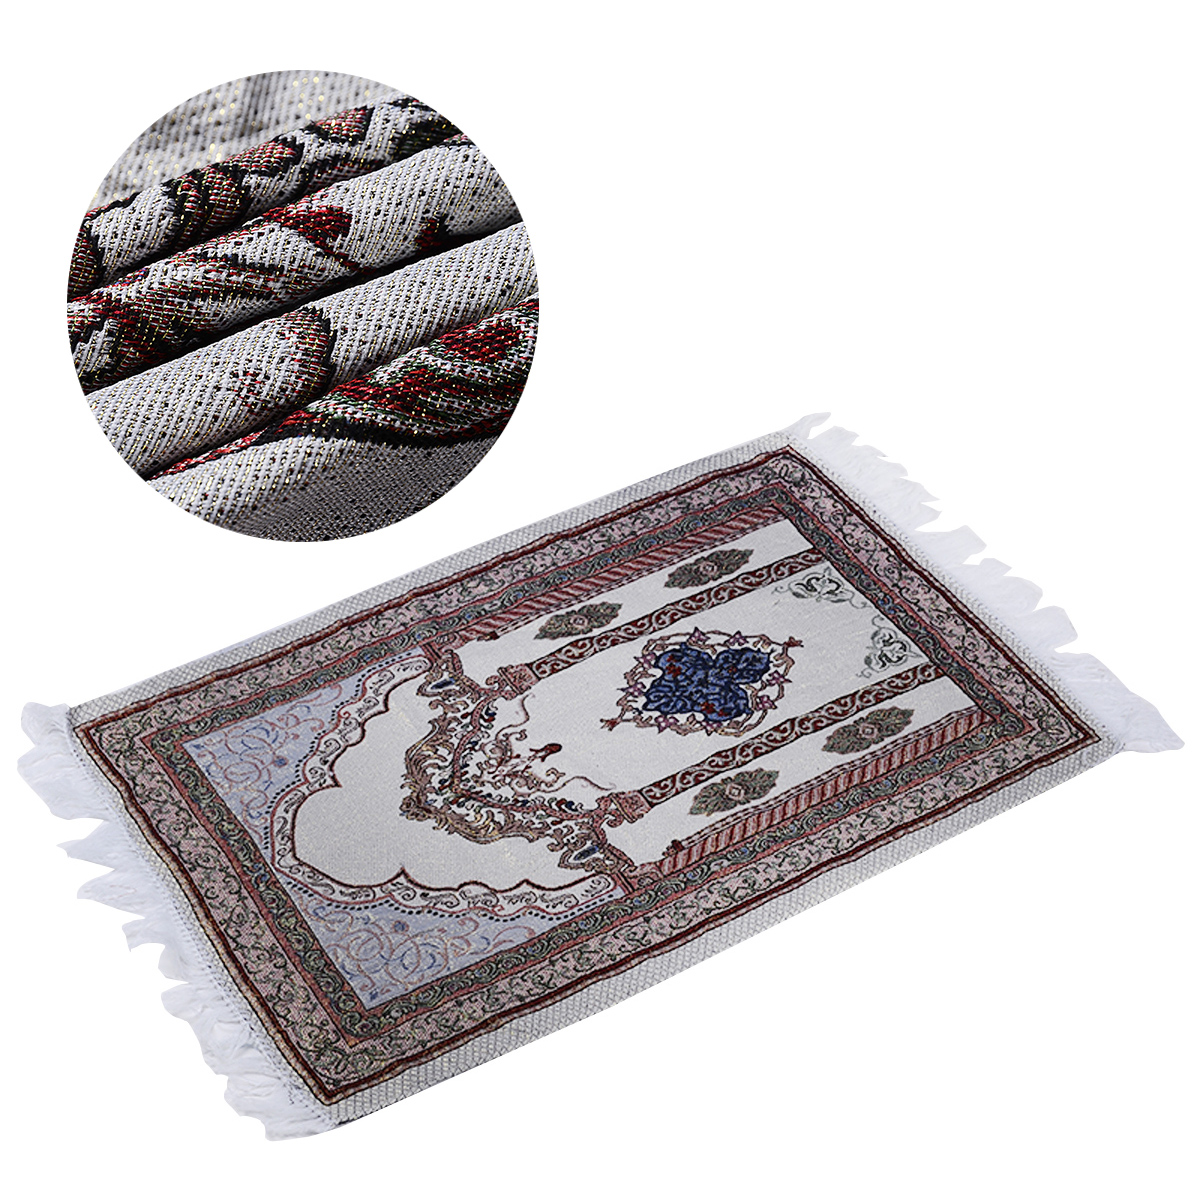 1Piece New Arrival Muslim Prayer Rug Prayer Rug Salat Namaz Islamic Arabian Style Islamic  Prayer Mat  27.5 * 43.3 Inch